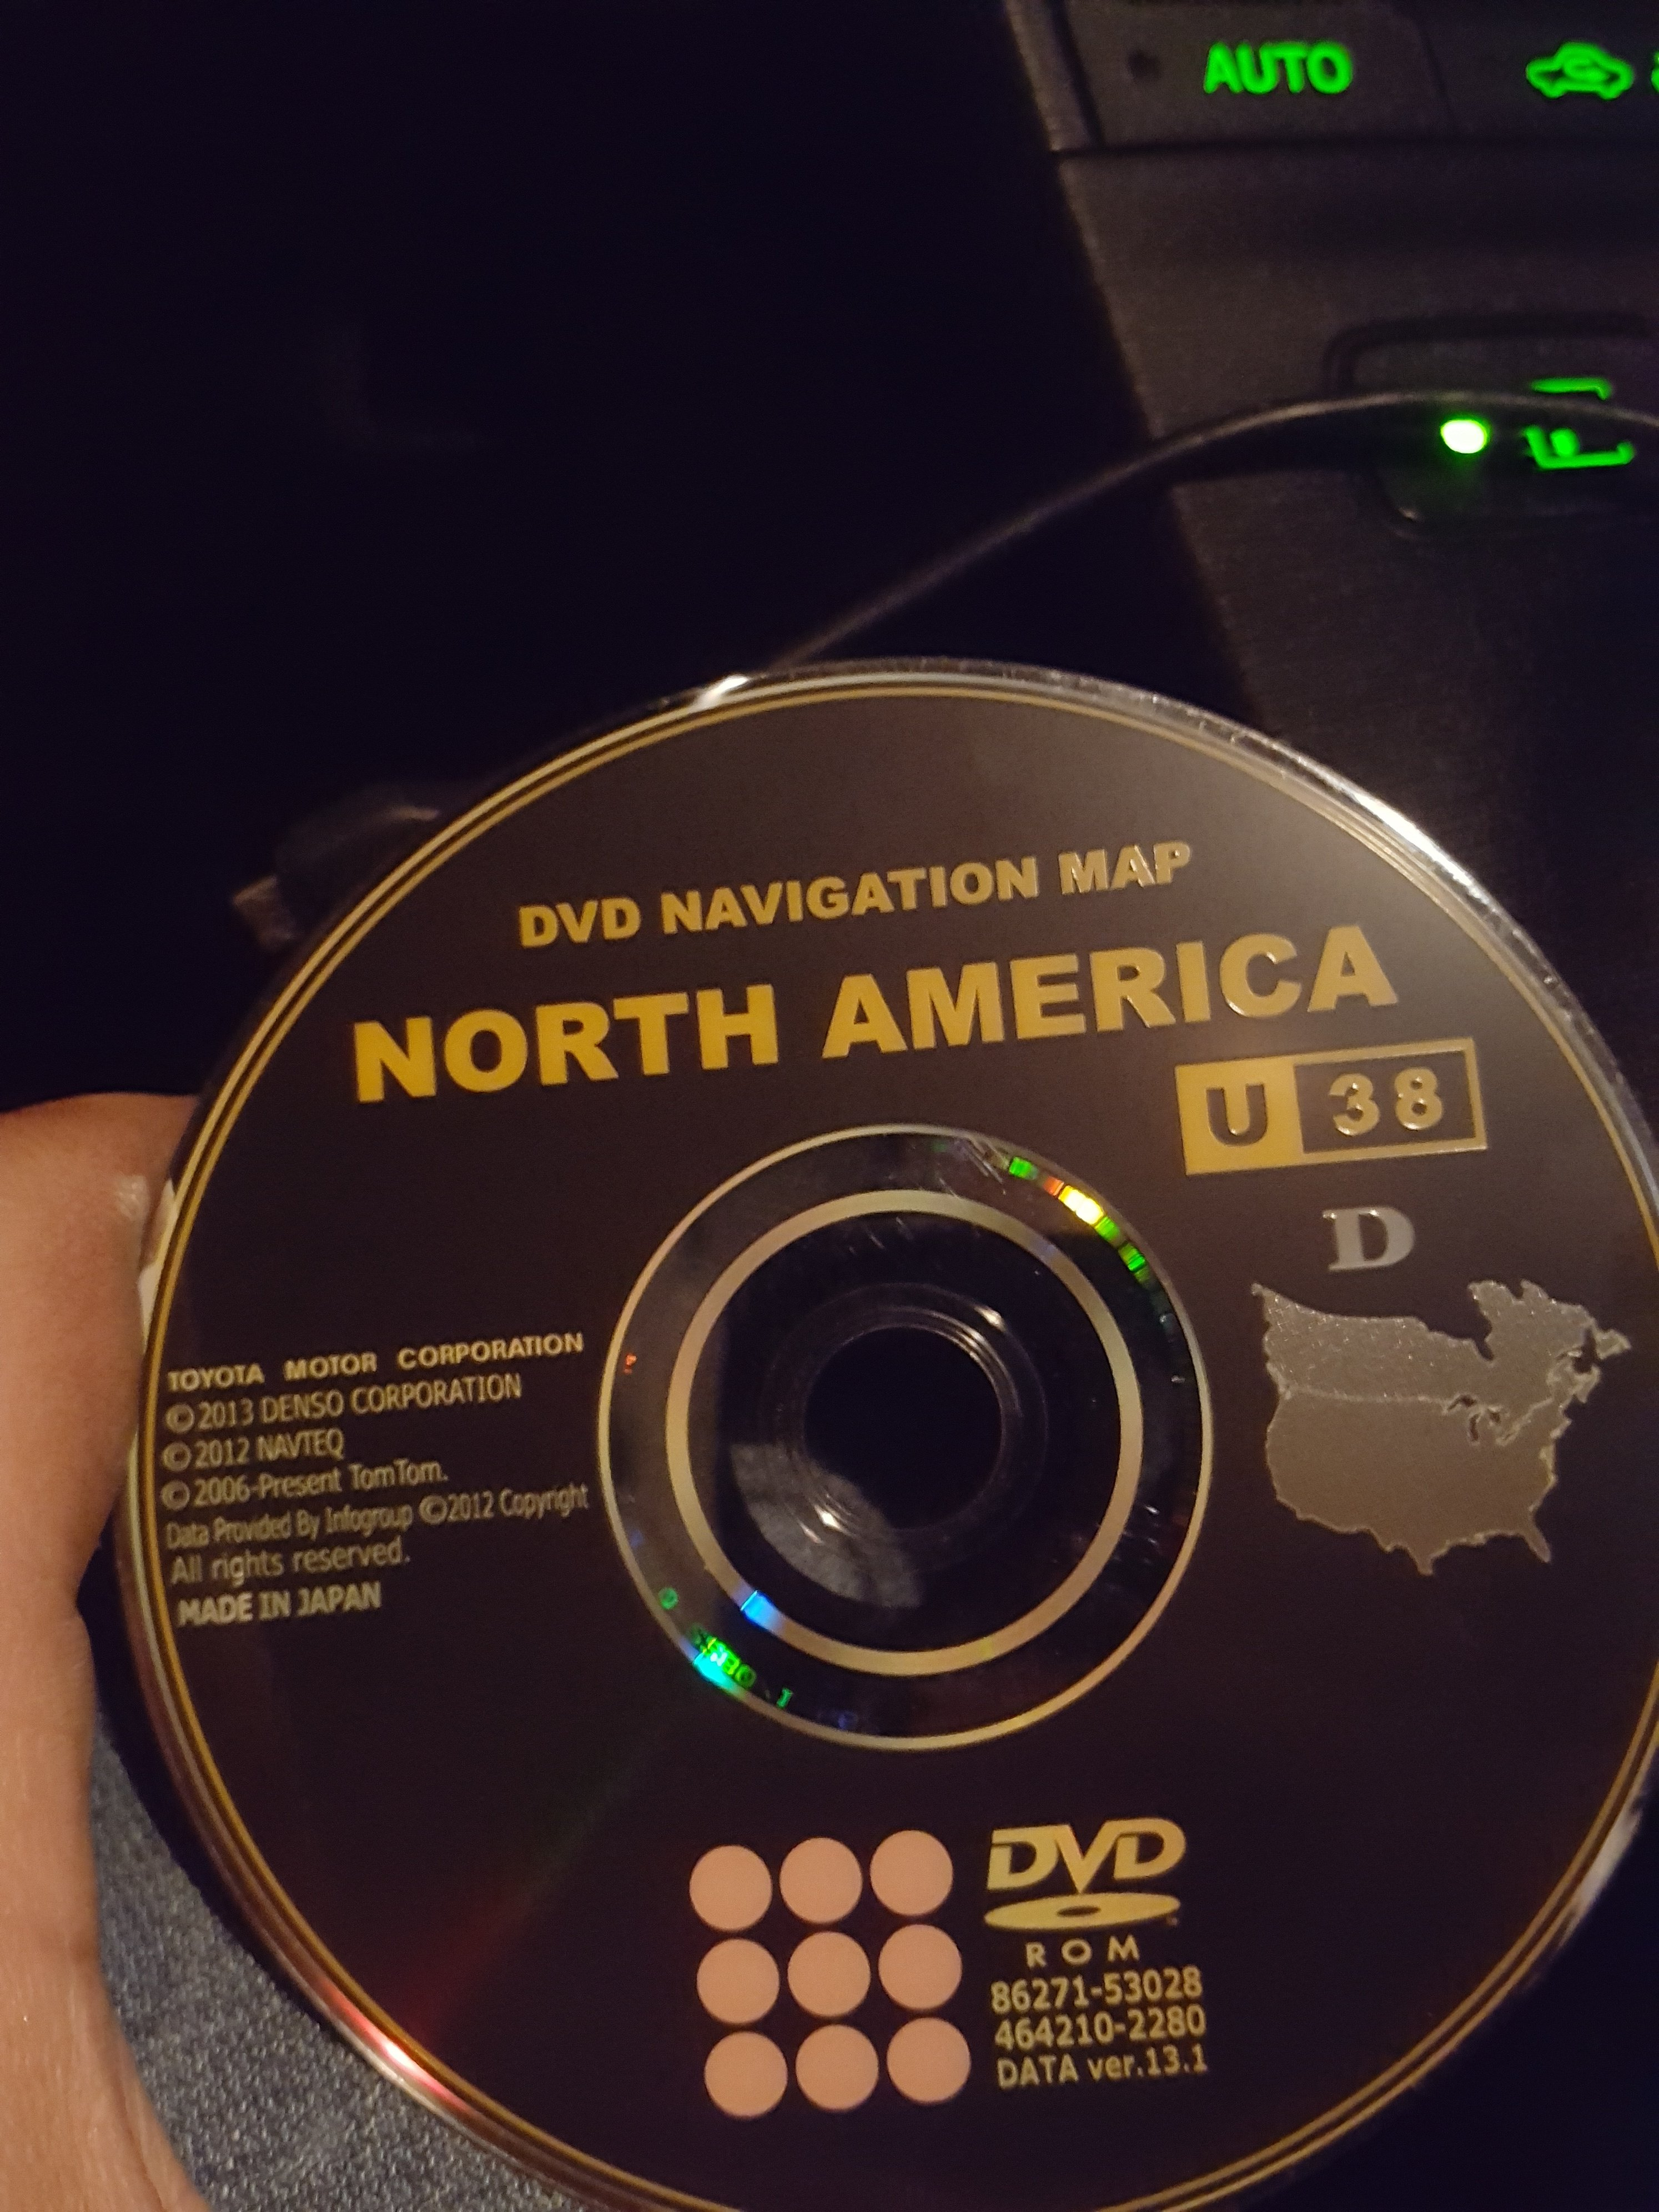 Toyota Sienna Service Manual: DVD Player Mechanical Error DVD Insertion and Ejection Error DVD Reading Abnormal